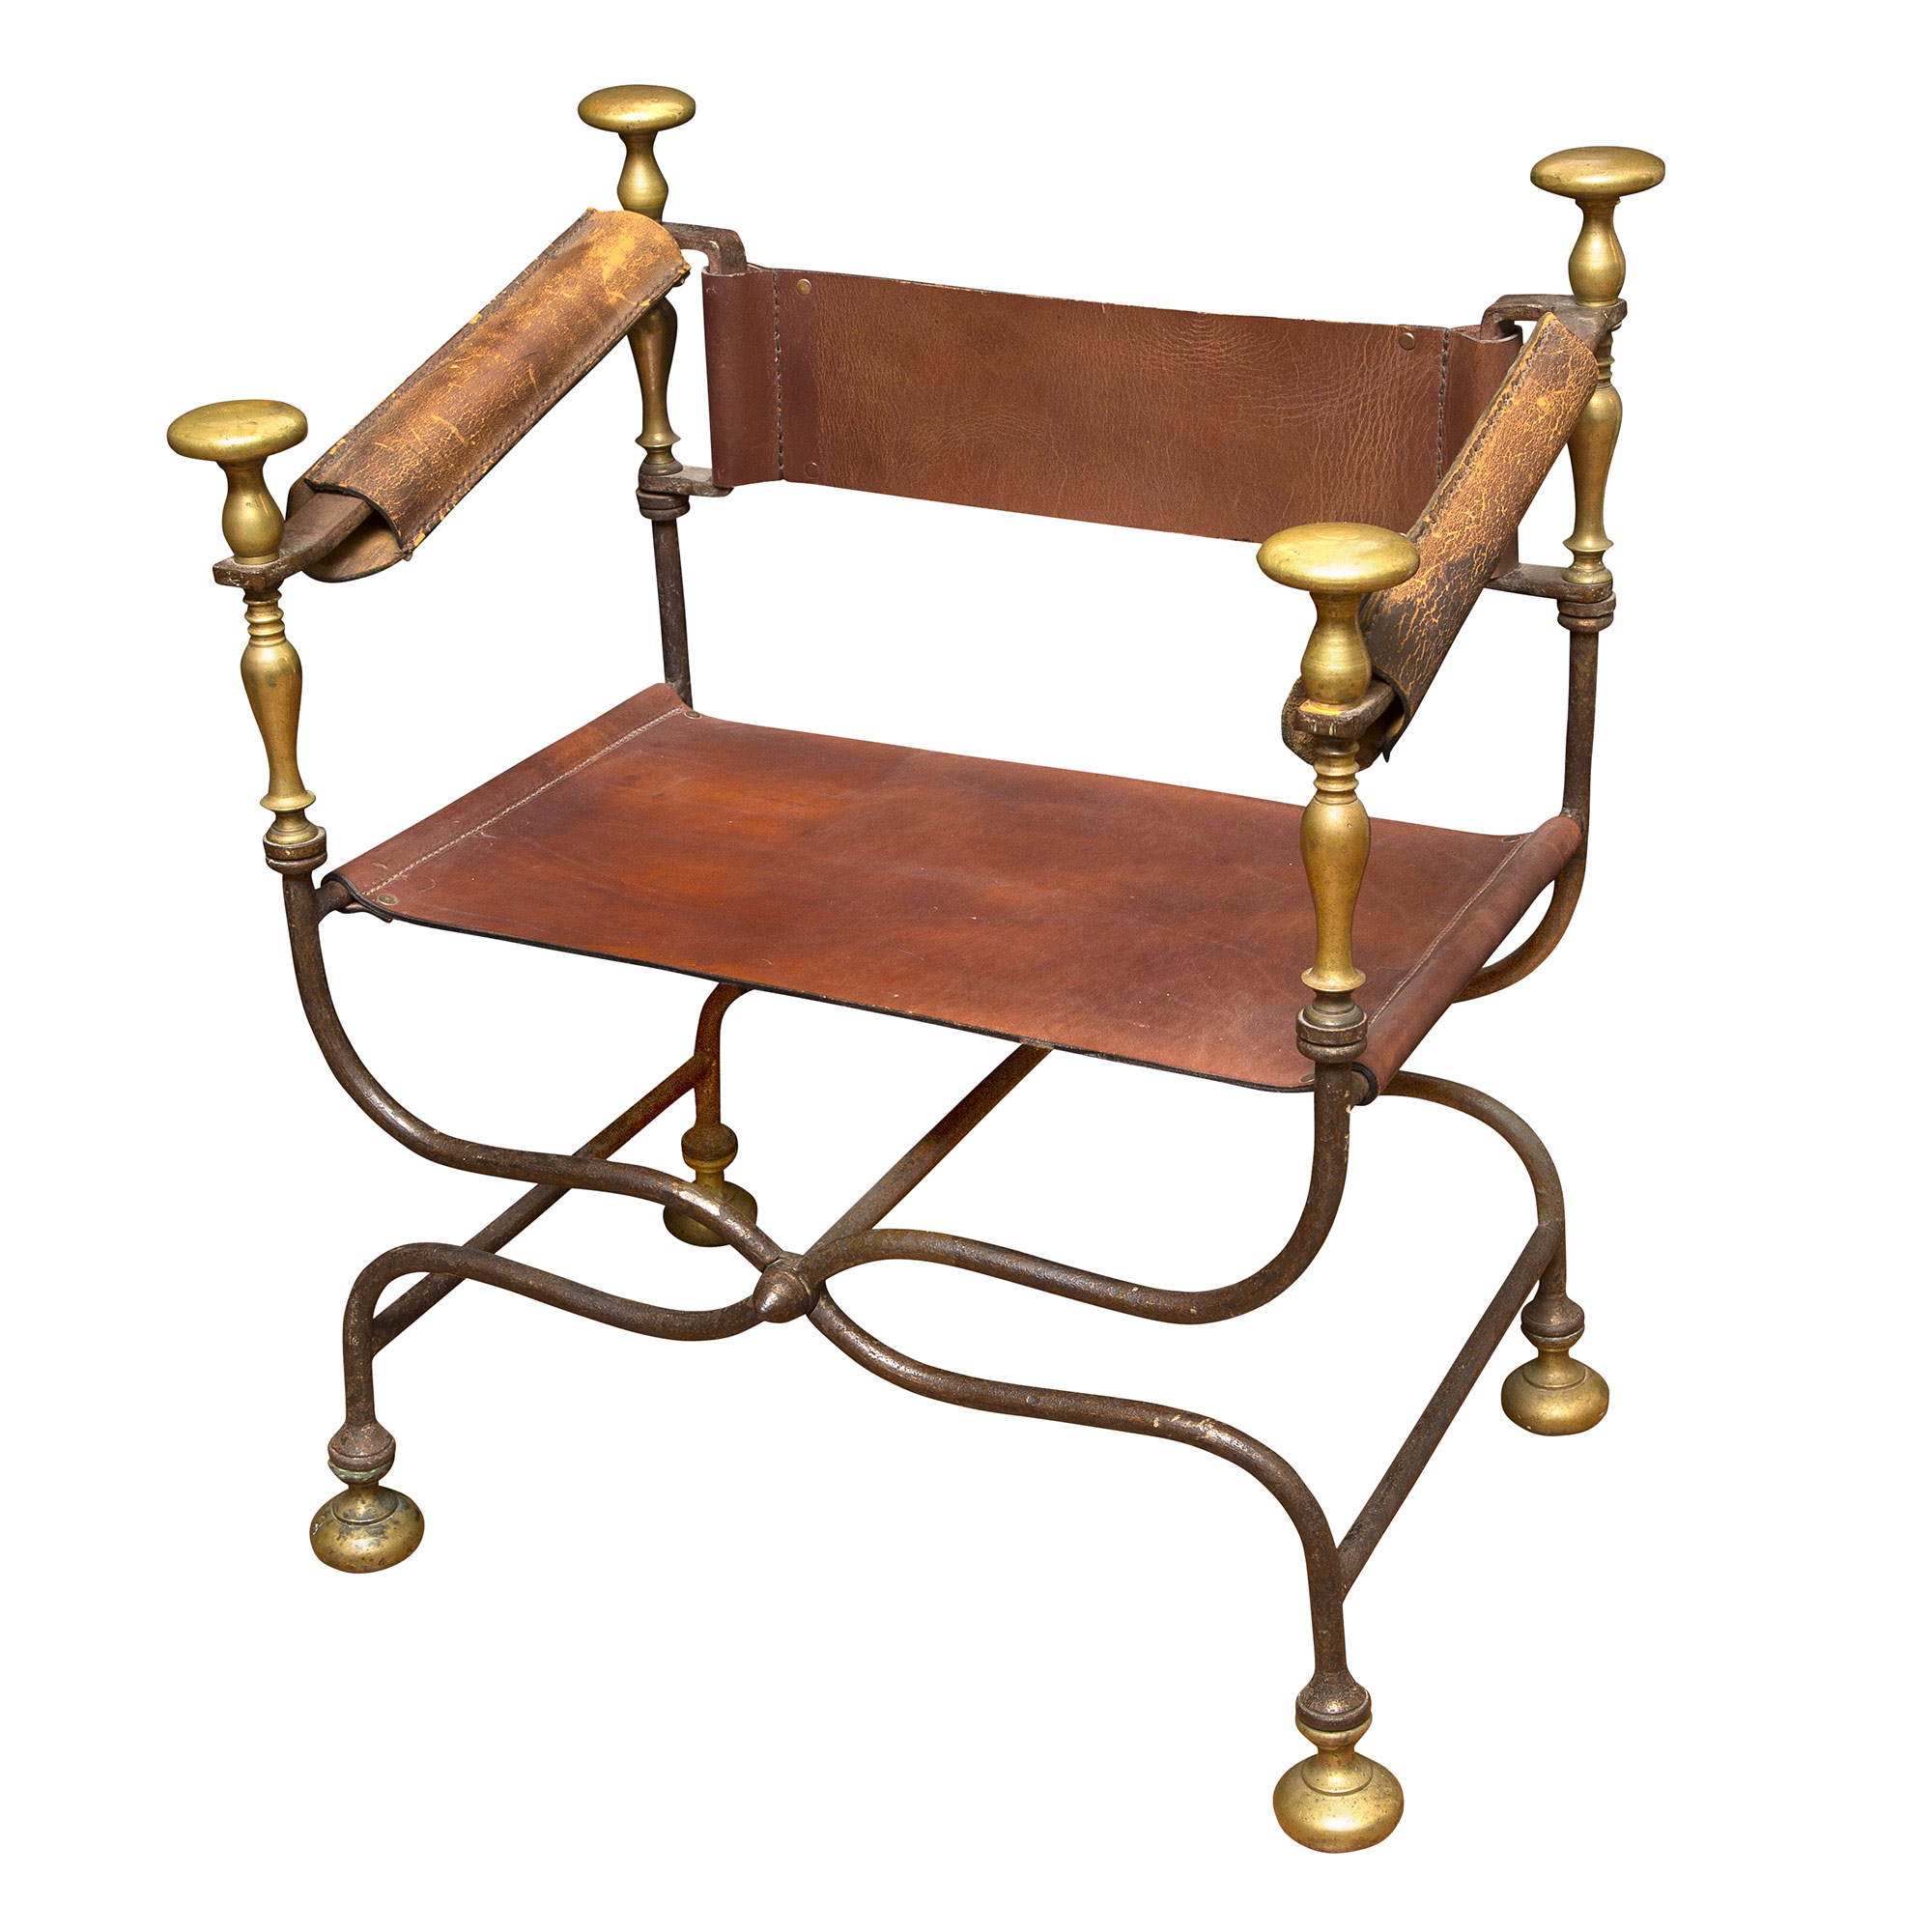 Lot image - Associated Pair of Renaissance Style Wrought Iron and Brass Folding Chairs